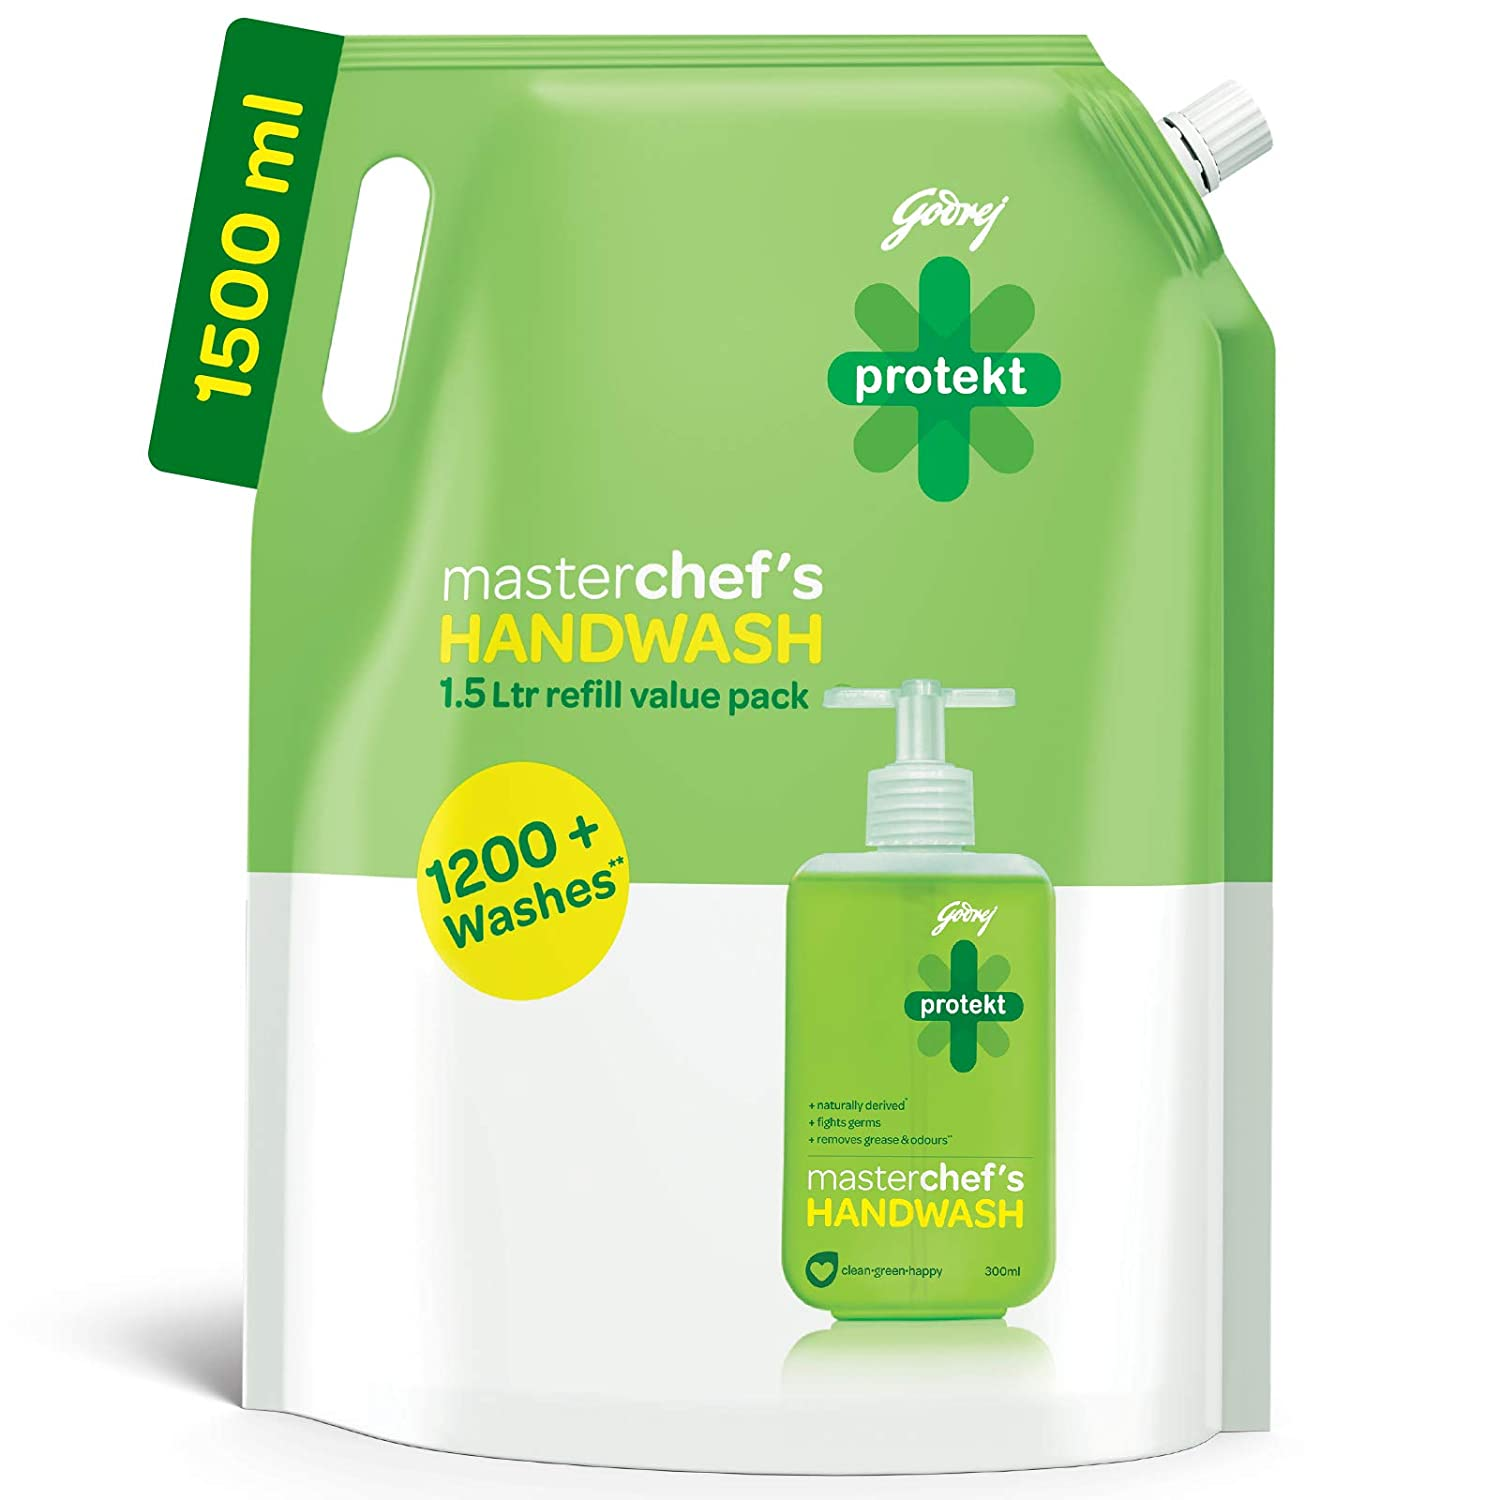 Godrej Protekt Masterchef's Germ Protection Liquid Handwash Refill, 1500ml